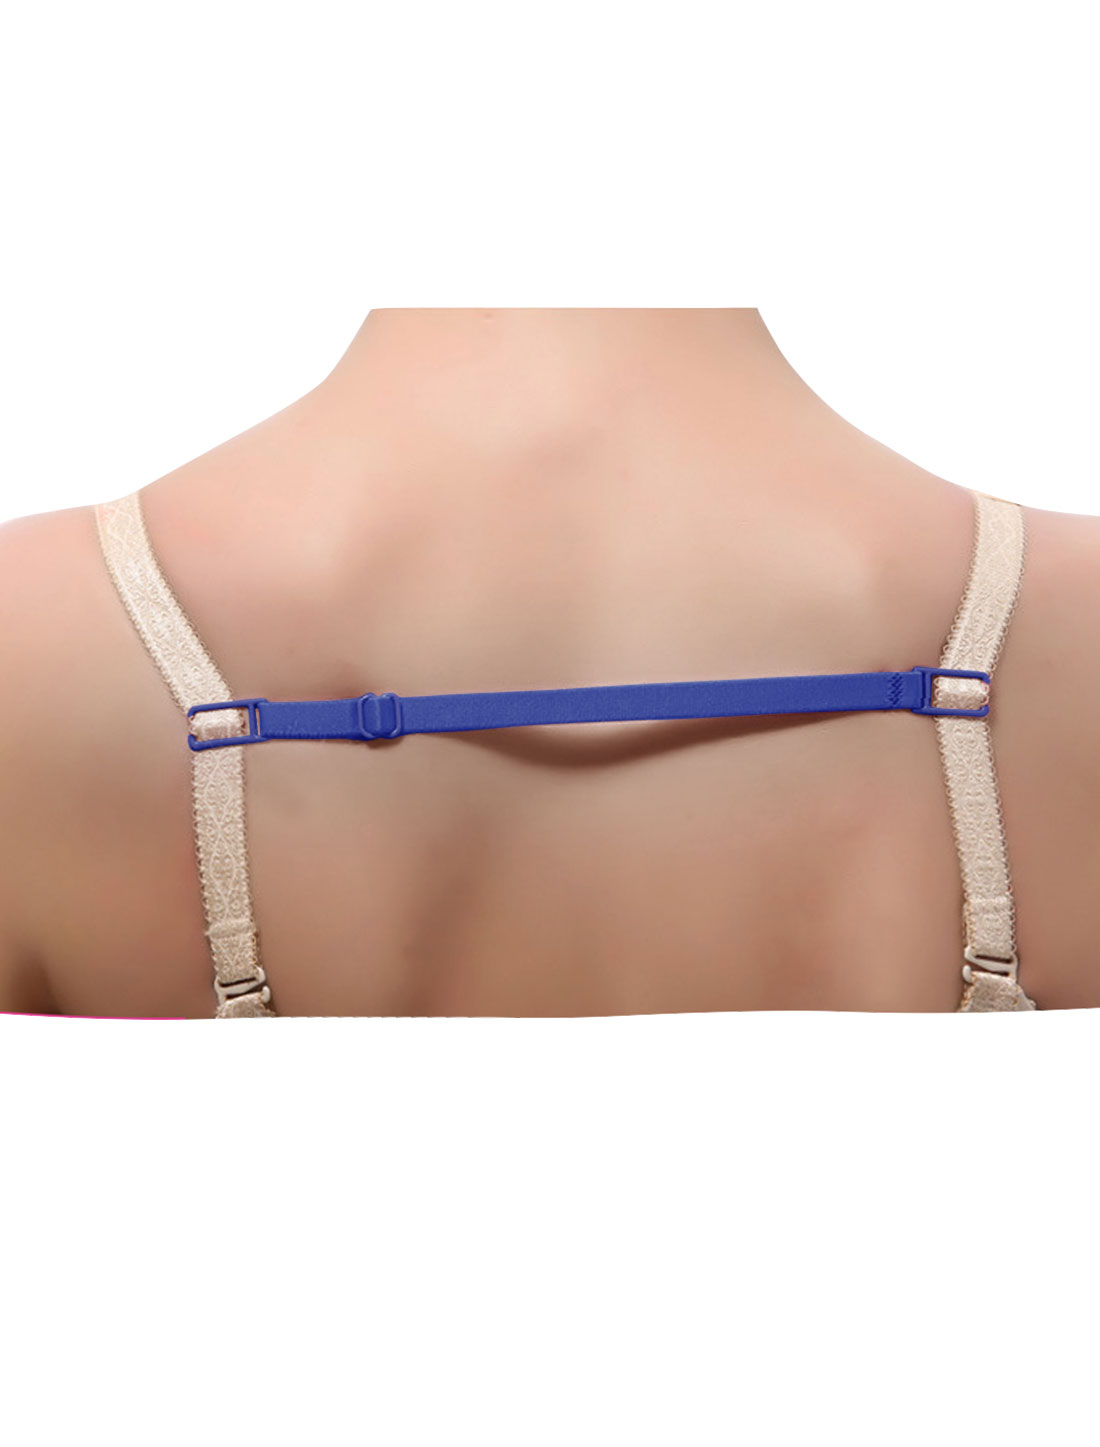 Women Elastic Band Non-Slip Adjustable Bra Straps Holder 10 Pcs Blue